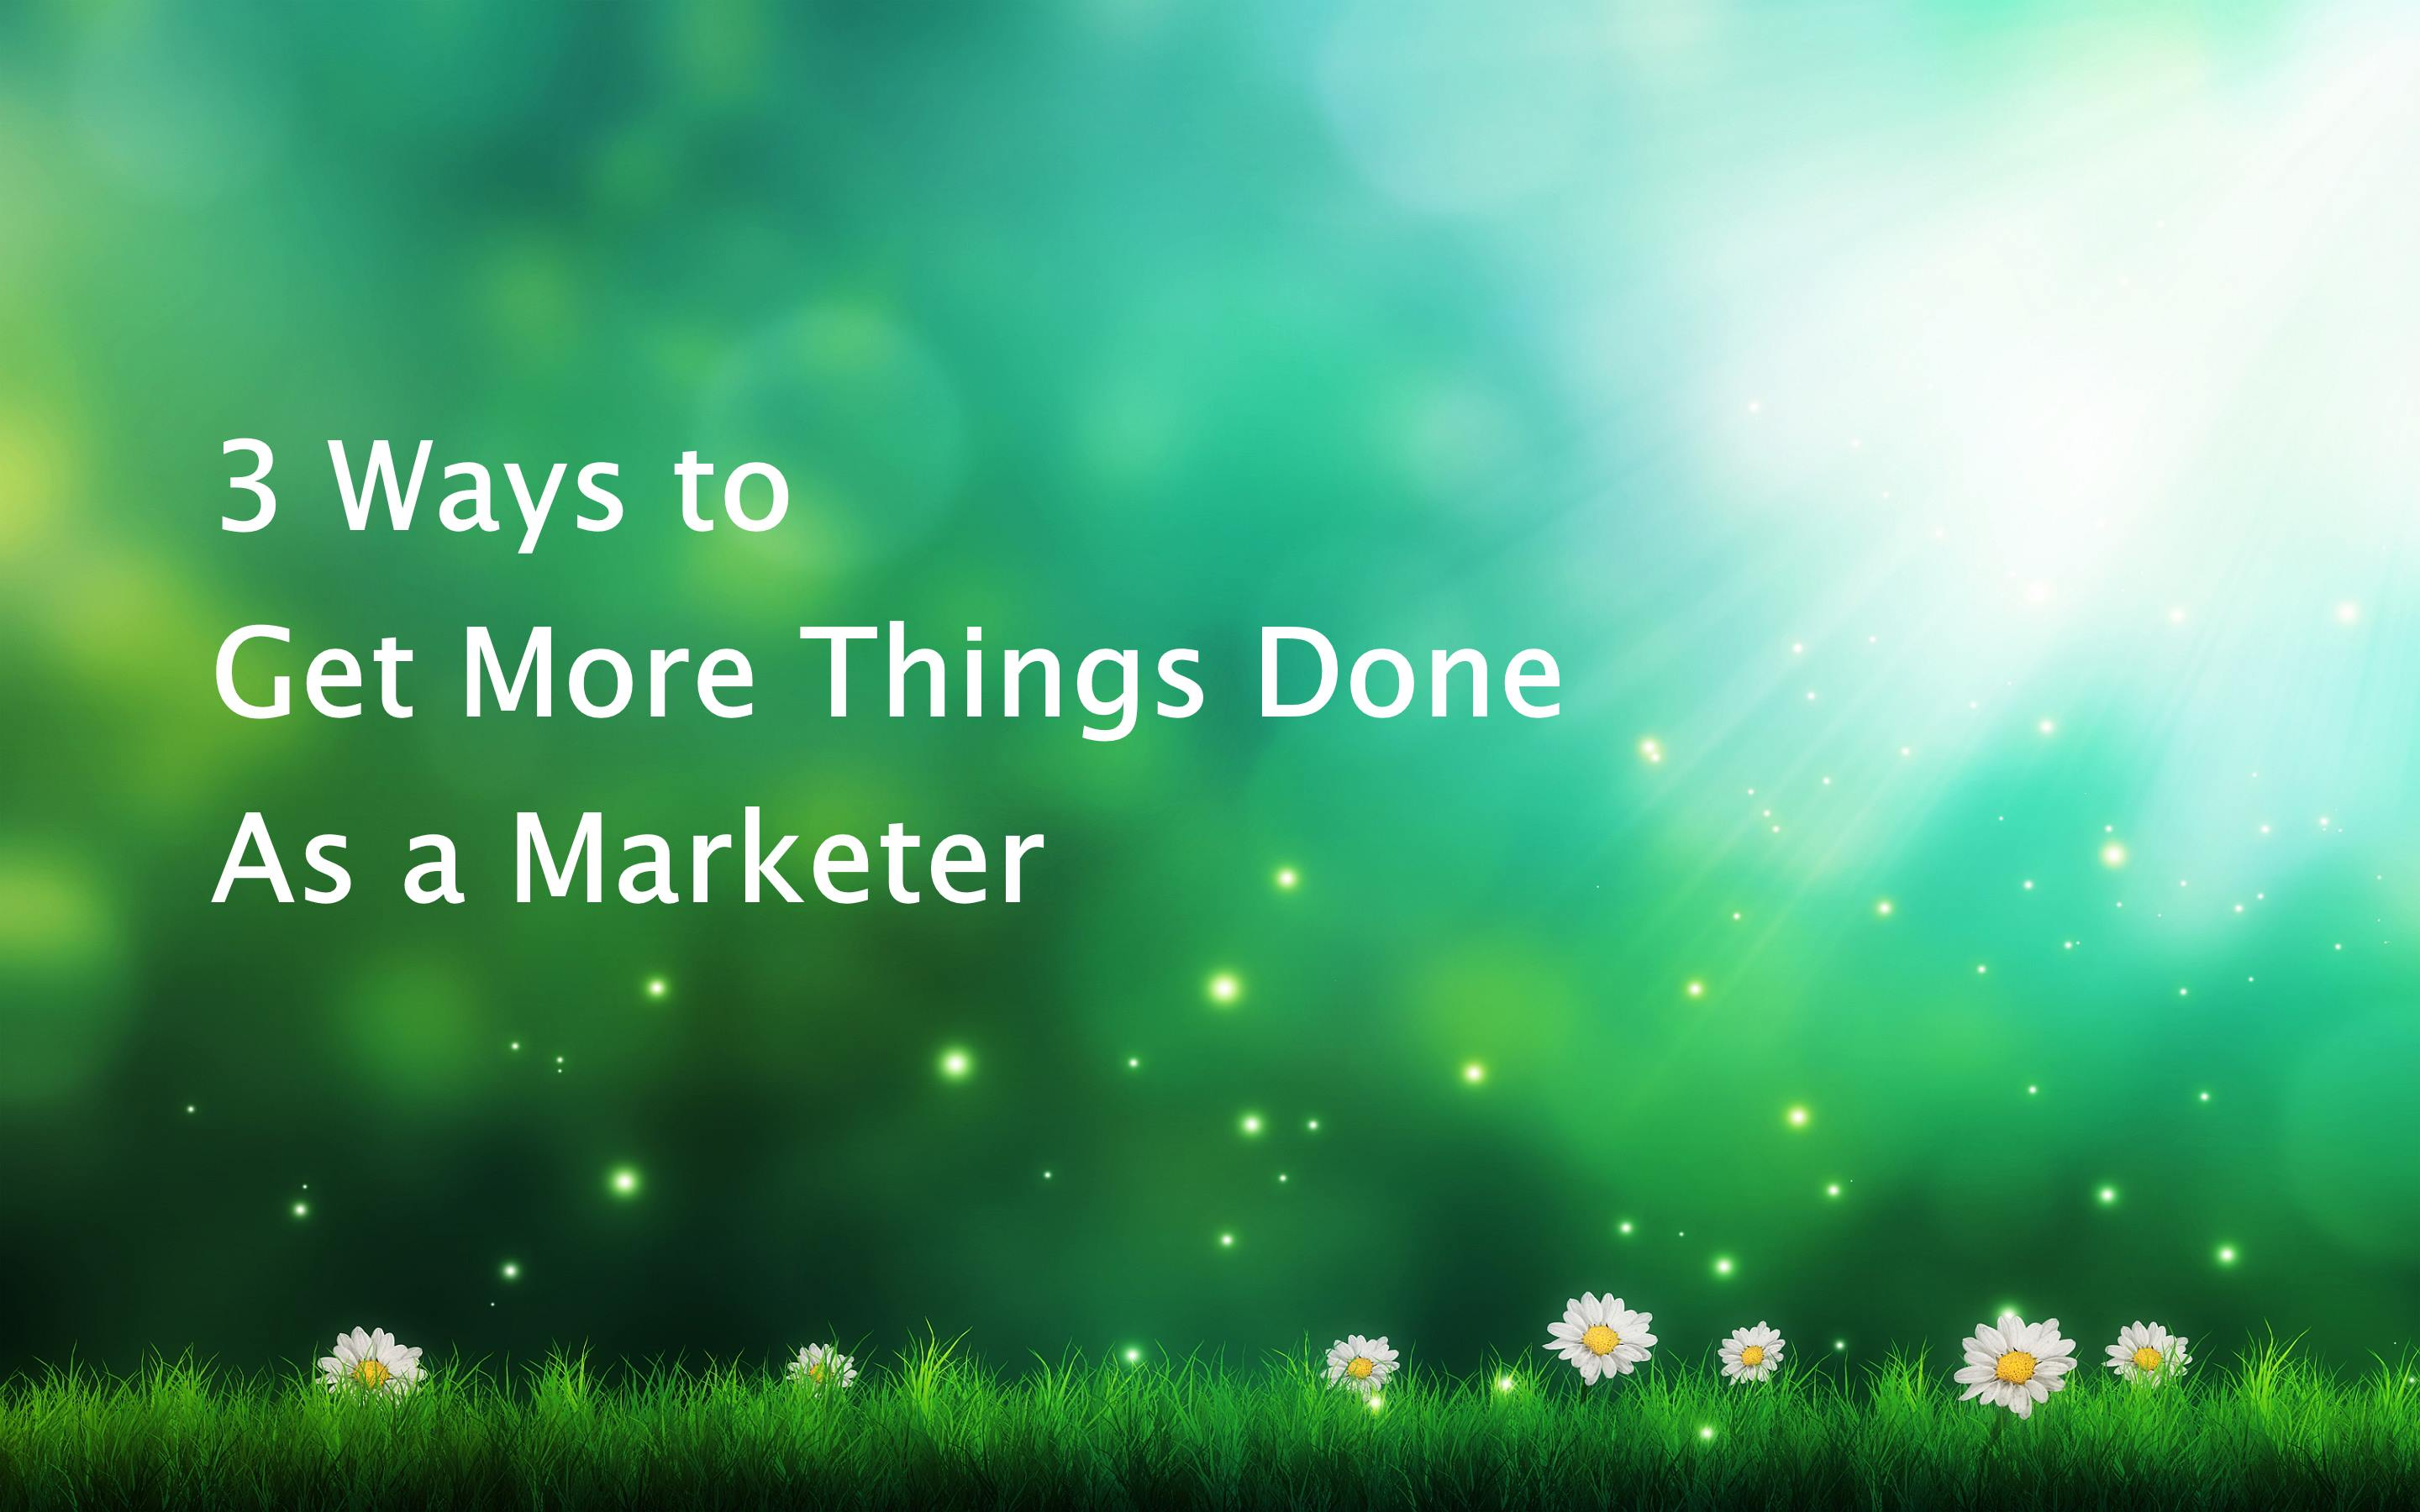 Get Things Done Marketing Image